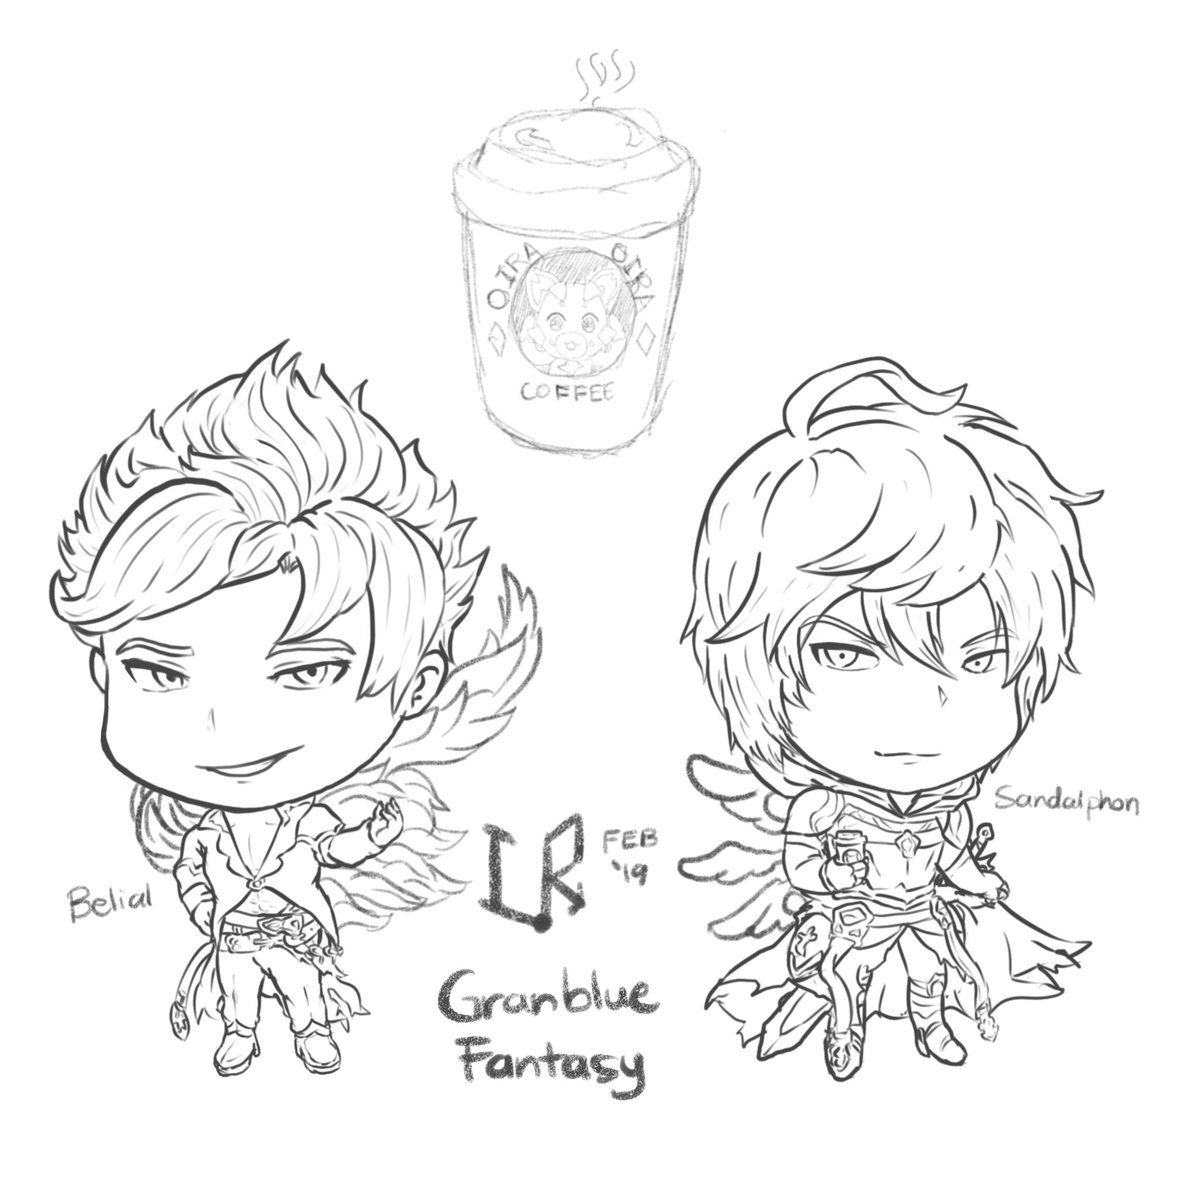 I drew the original sketch during the first run WMTSB II and only bothered to do proper lineart now. Never too late, I guess. Belial and Sandalphon. #GBF #GranblueFantasy <br>http://pic.twitter.com/VNUPGOYgL1